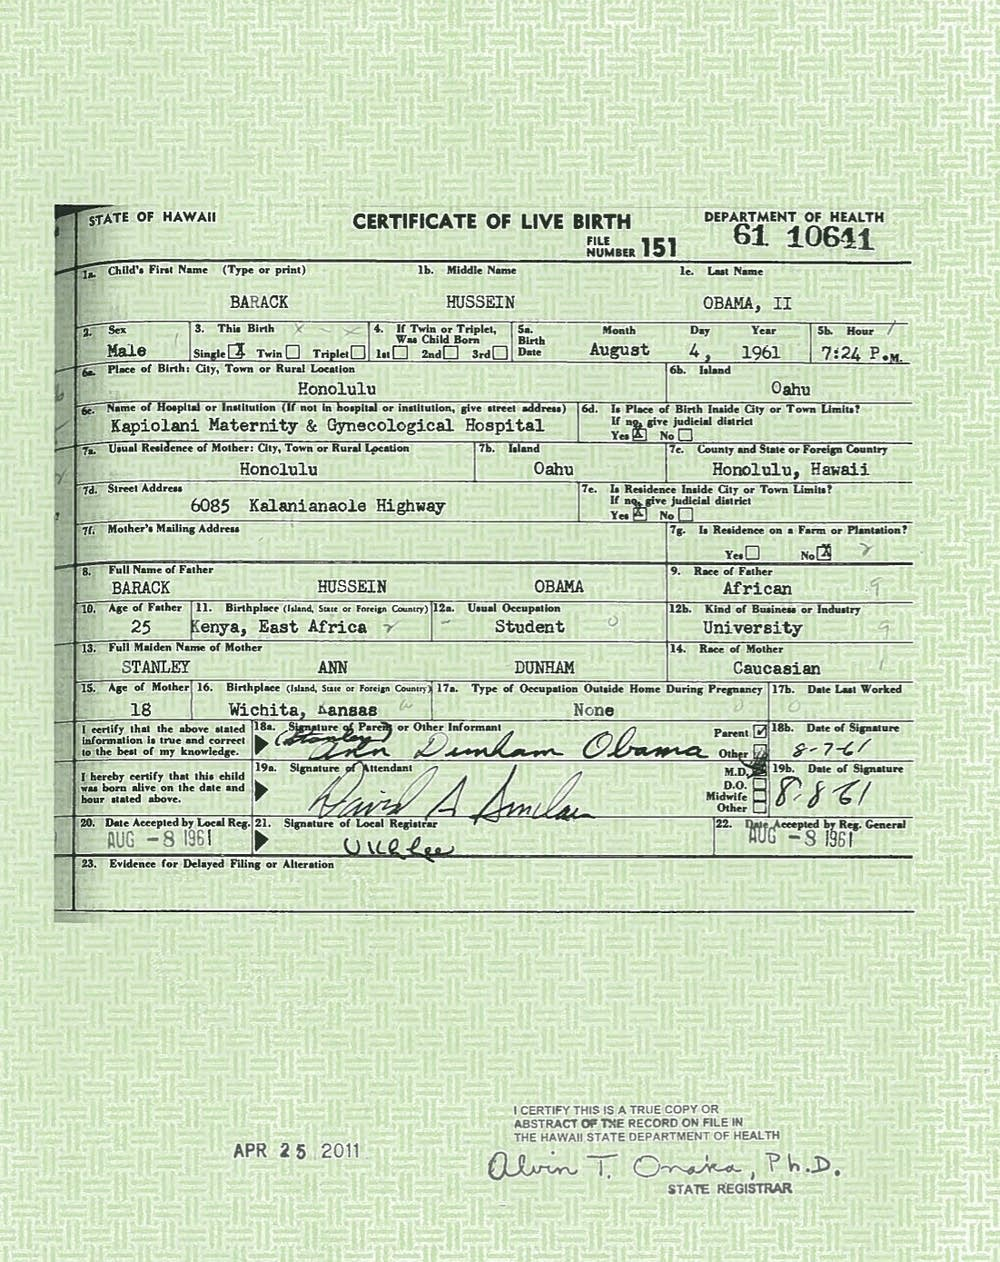 President Barack Obama's birth certificate